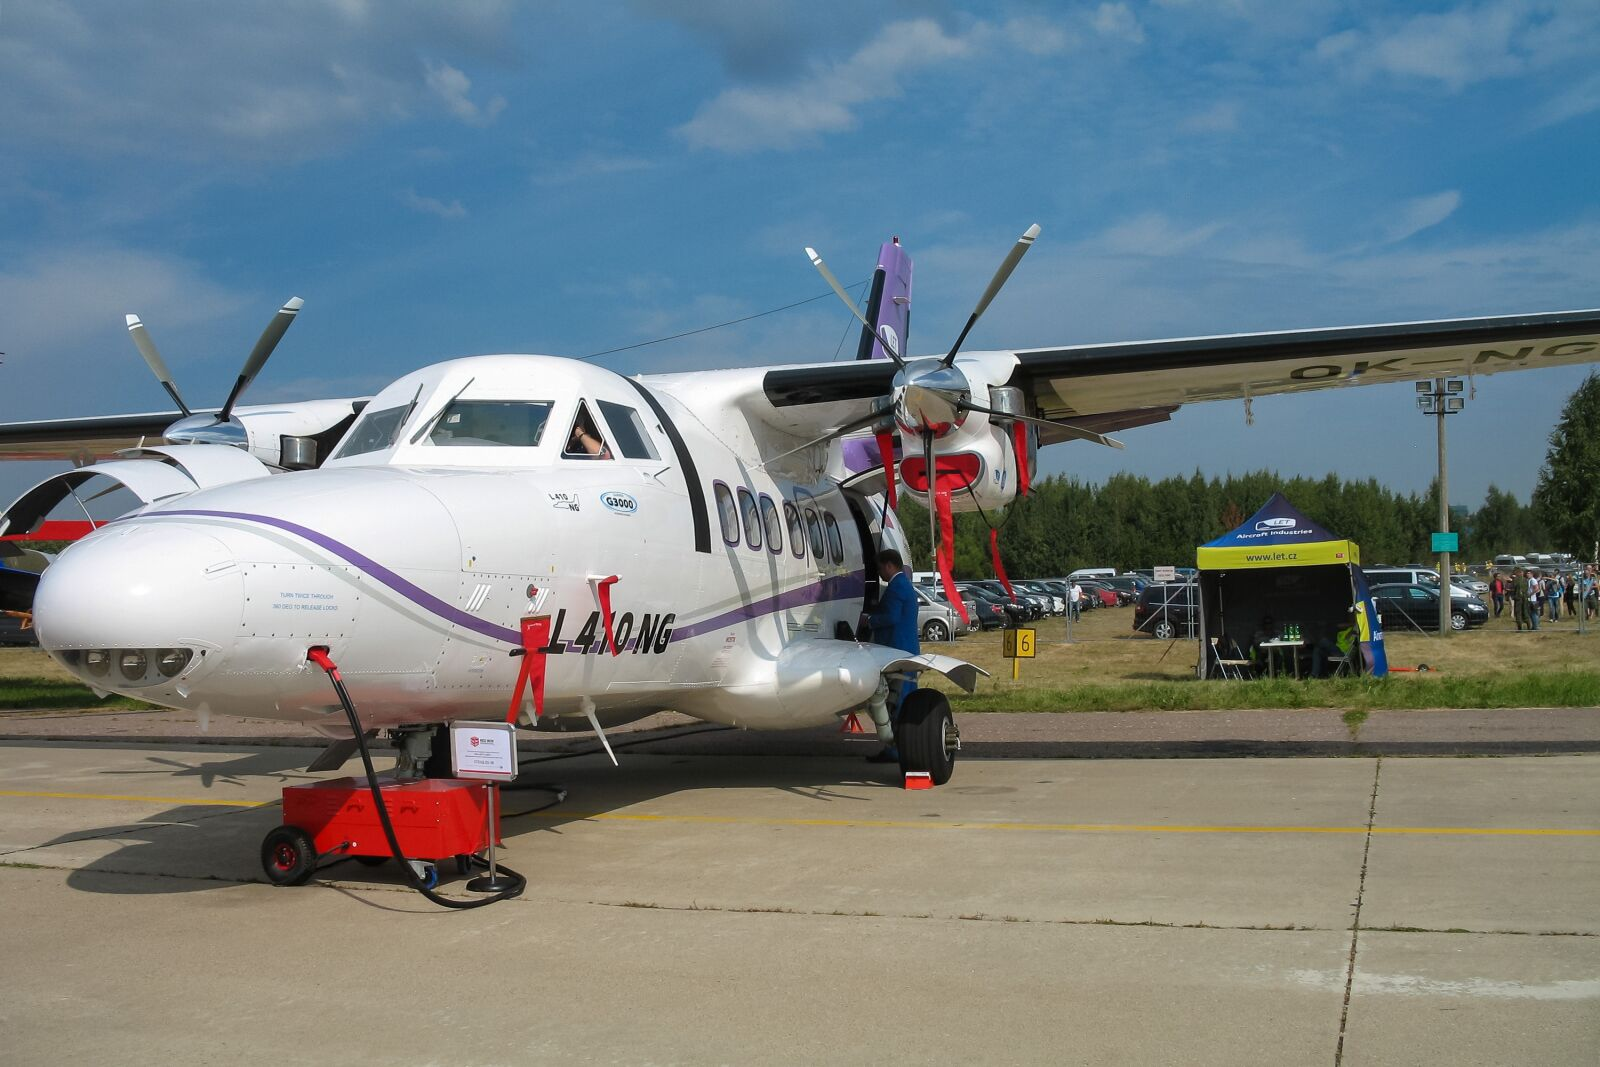 """Canon POWERSHOT A620 sample photo. """"Plane, the show, static"""" photography"""